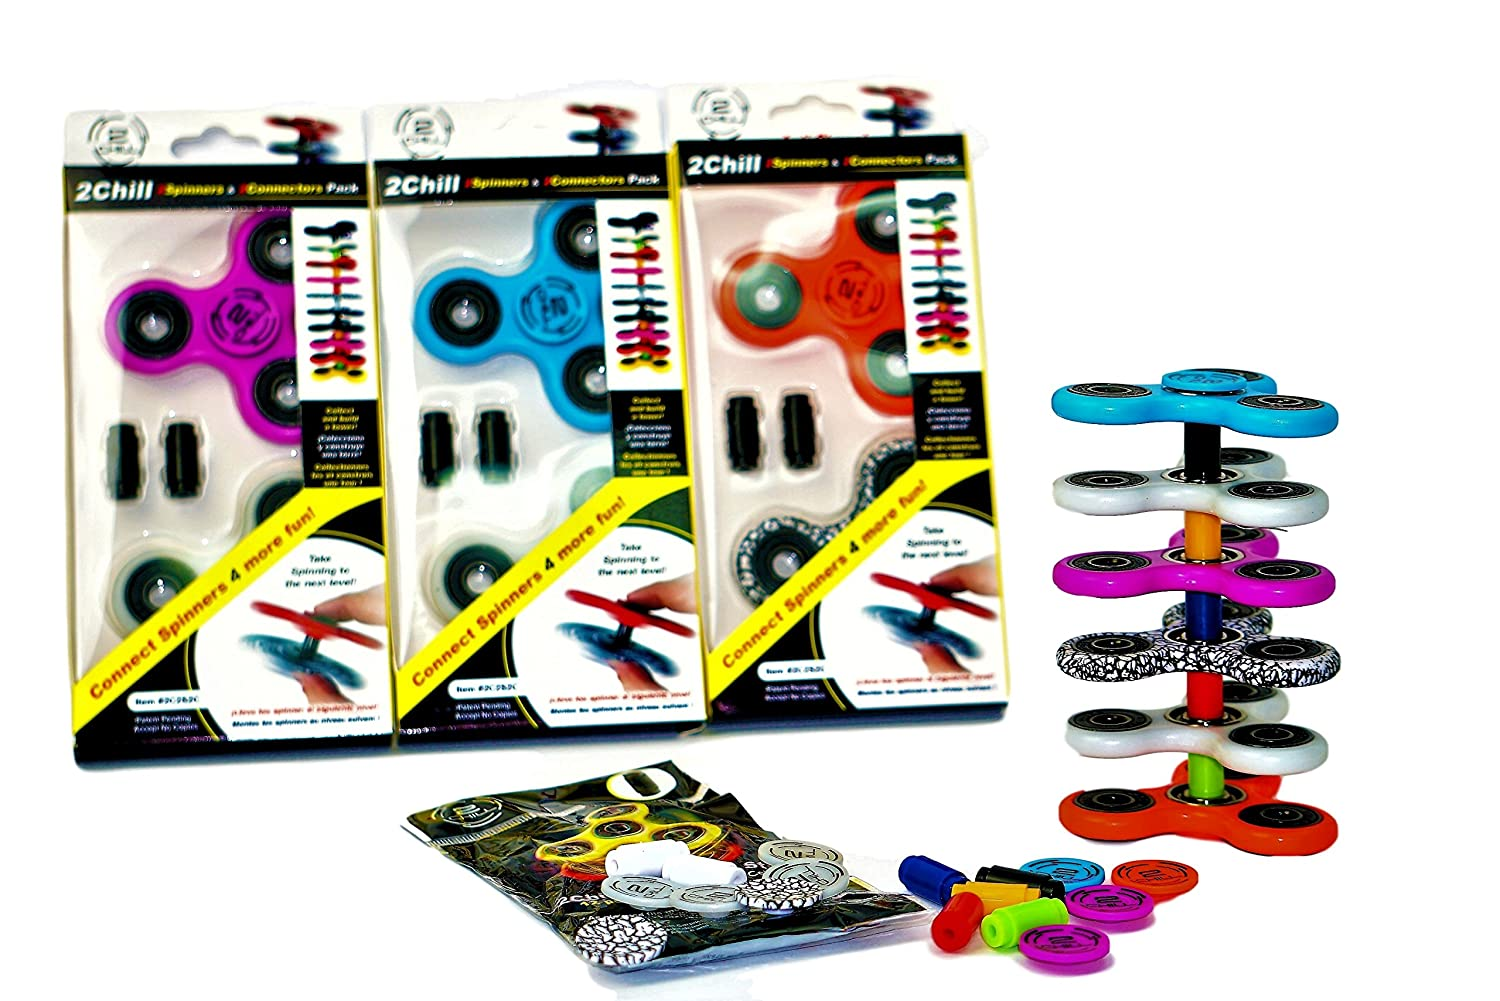 2CHILL Fidget Spinner with Connectors 24 pcs Set Make a Tower